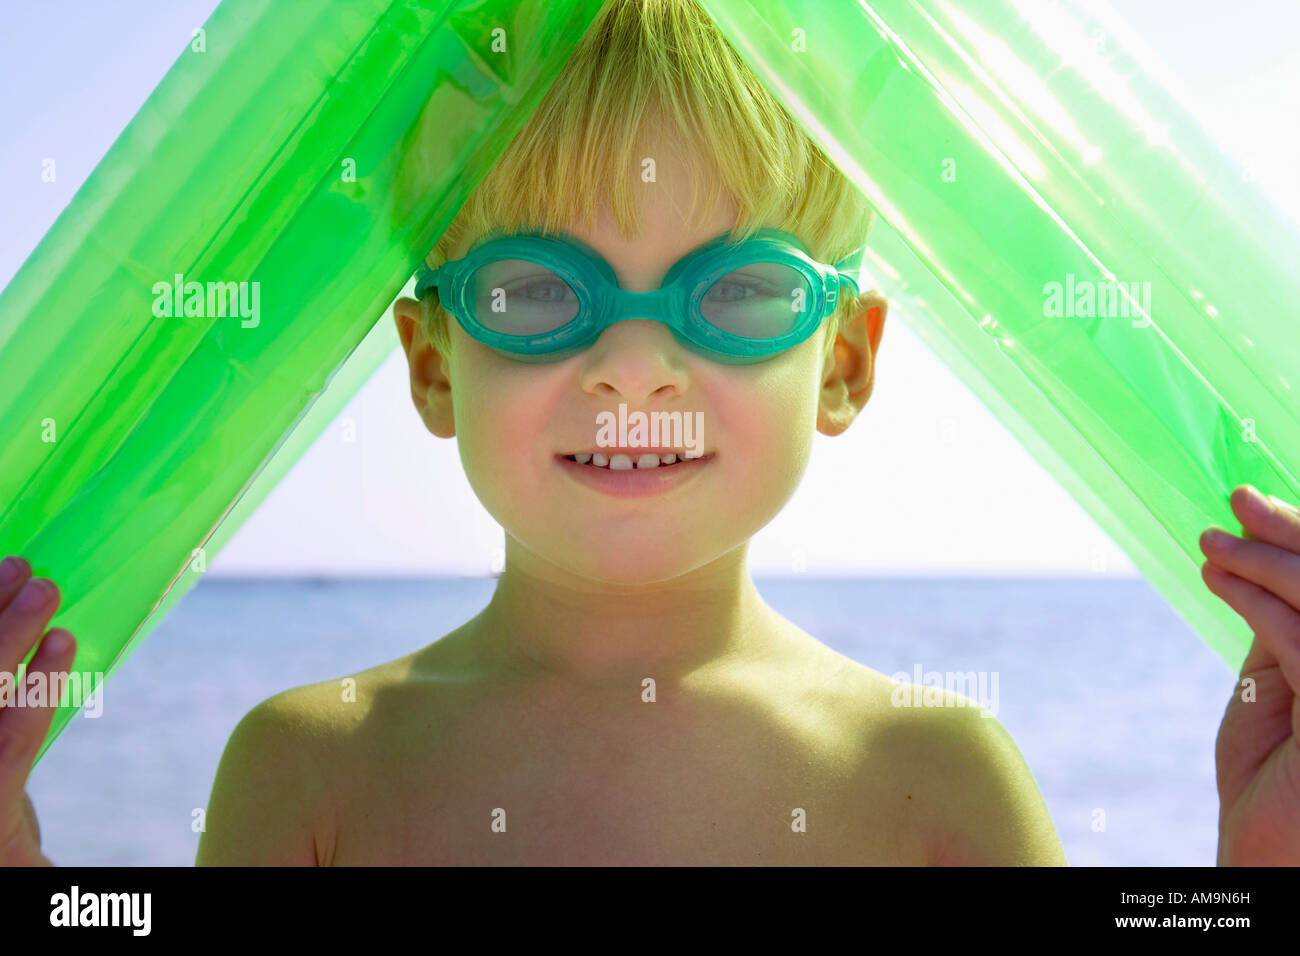 Young boy wearing swim goggles and holding an inflatable raft over his head. Stock Photo